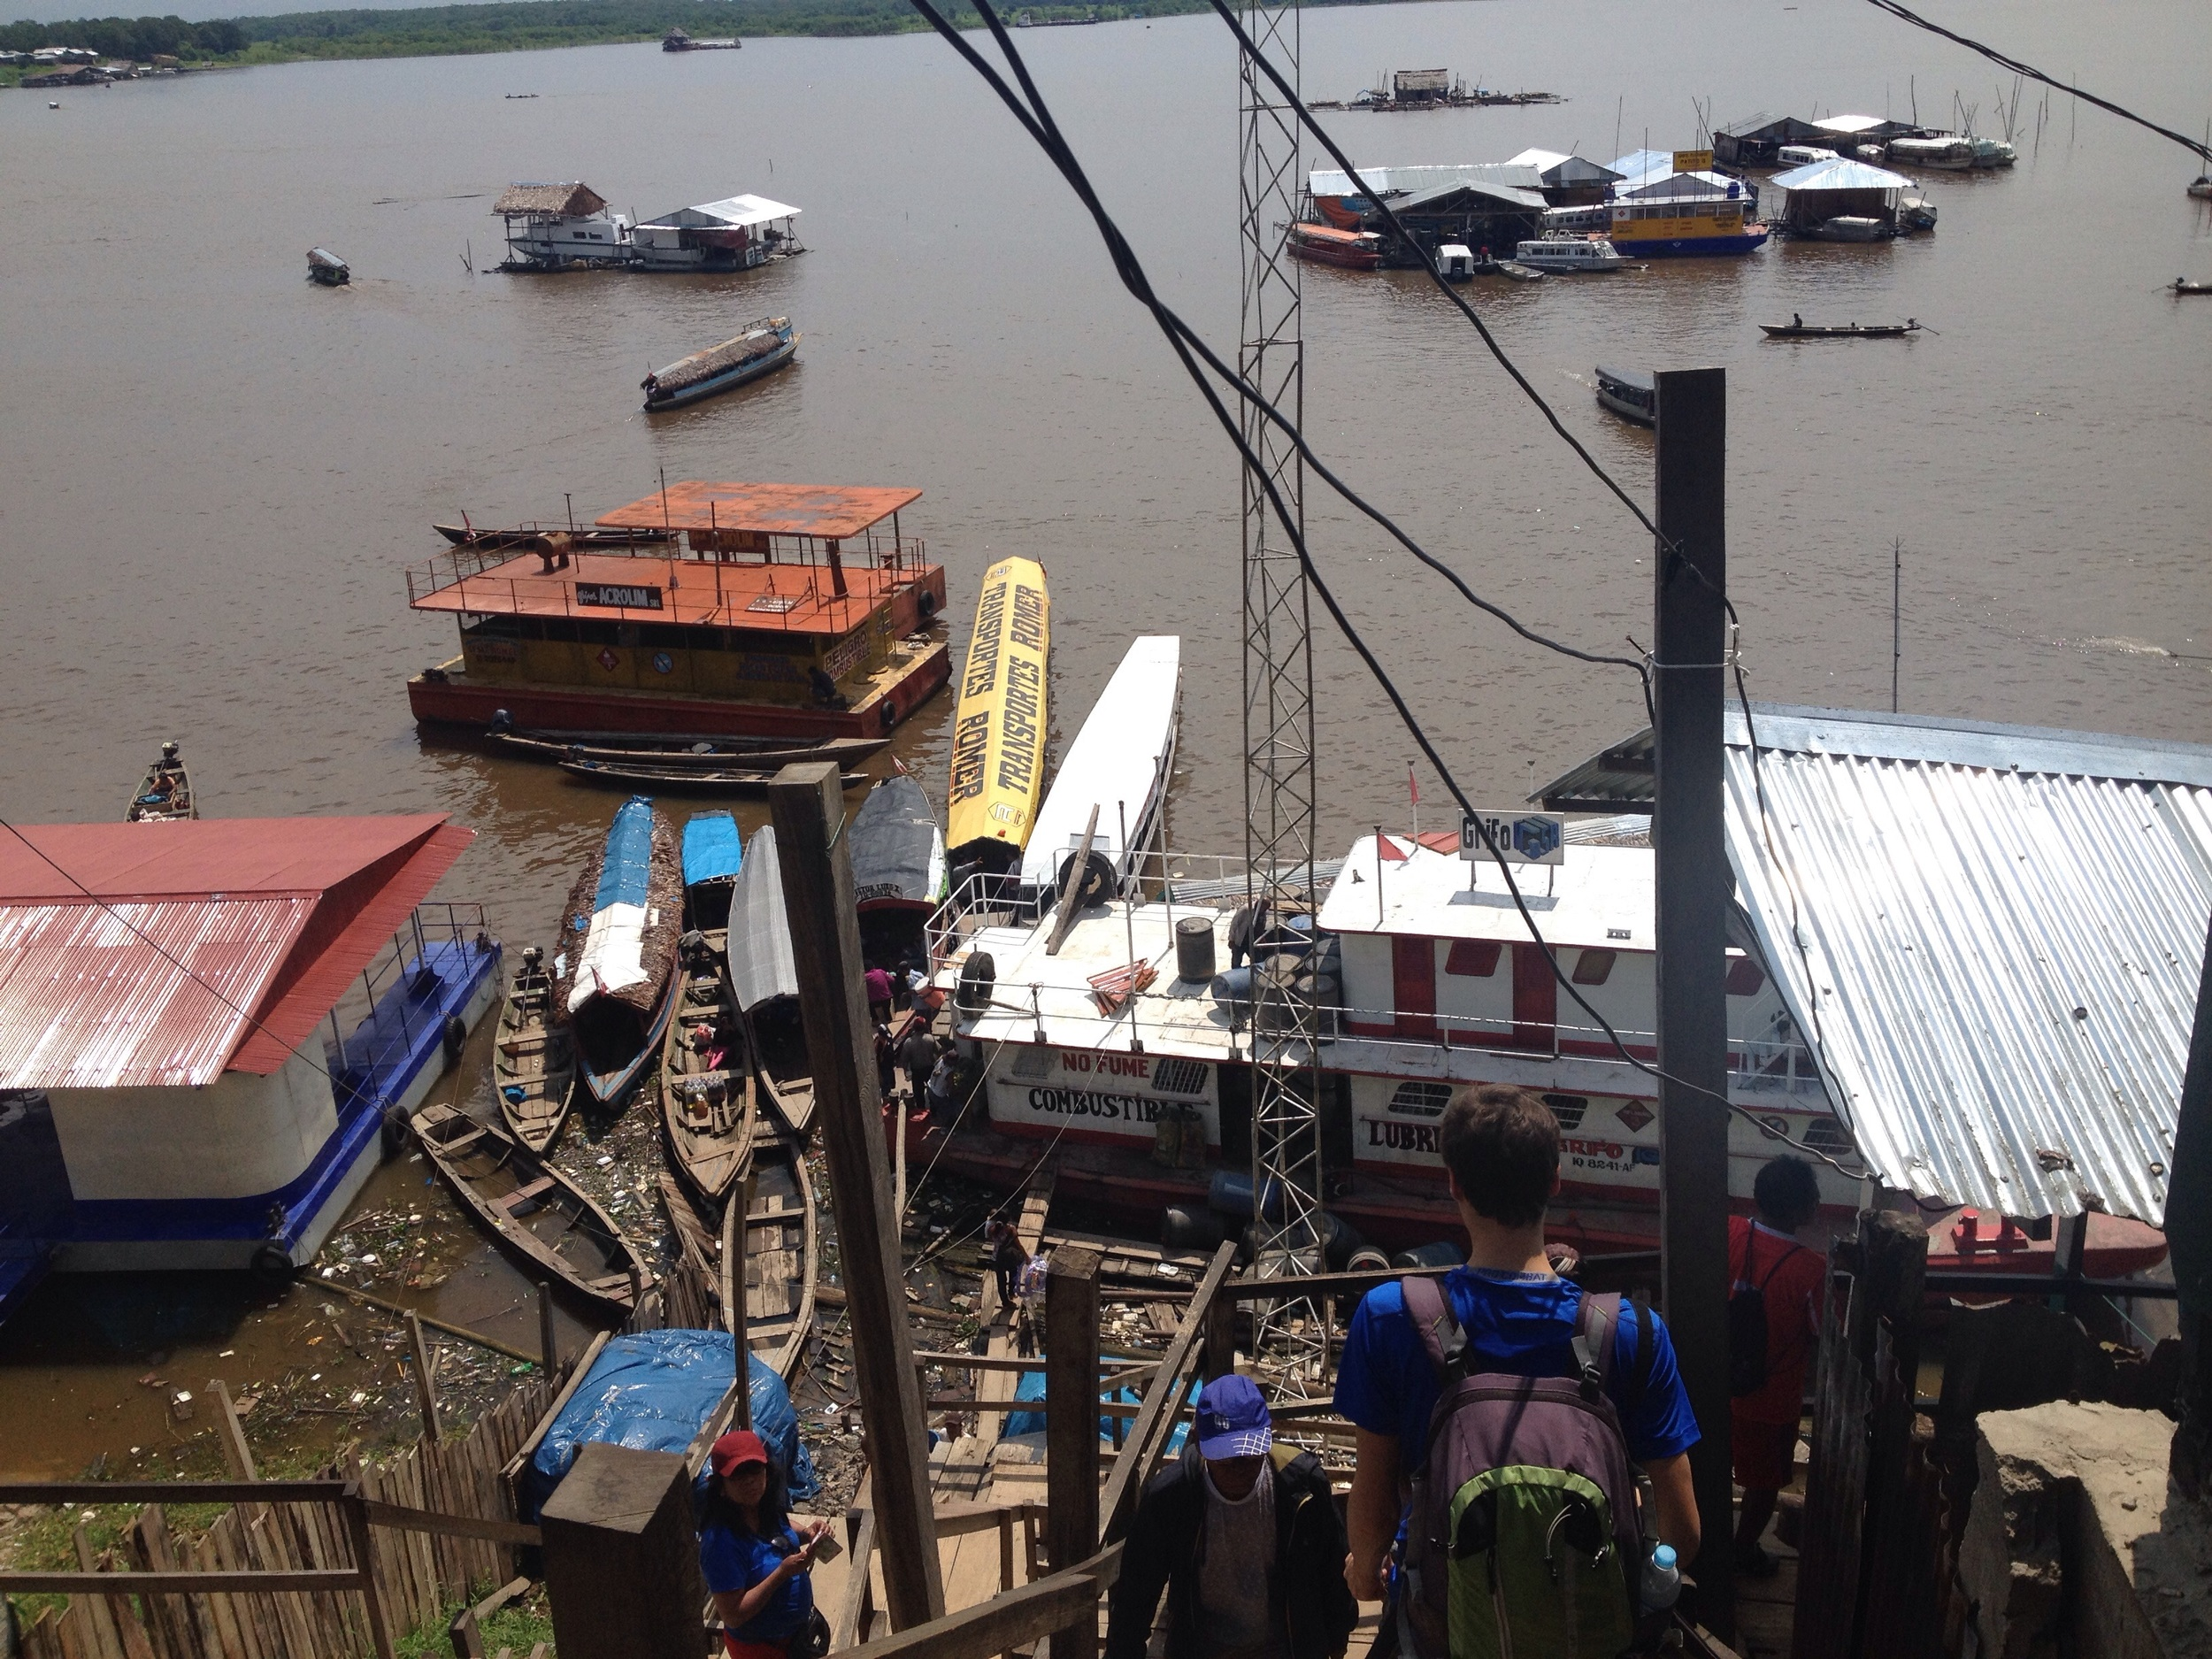 Catching the fast boat from Iquitos wharf to Amazon camp